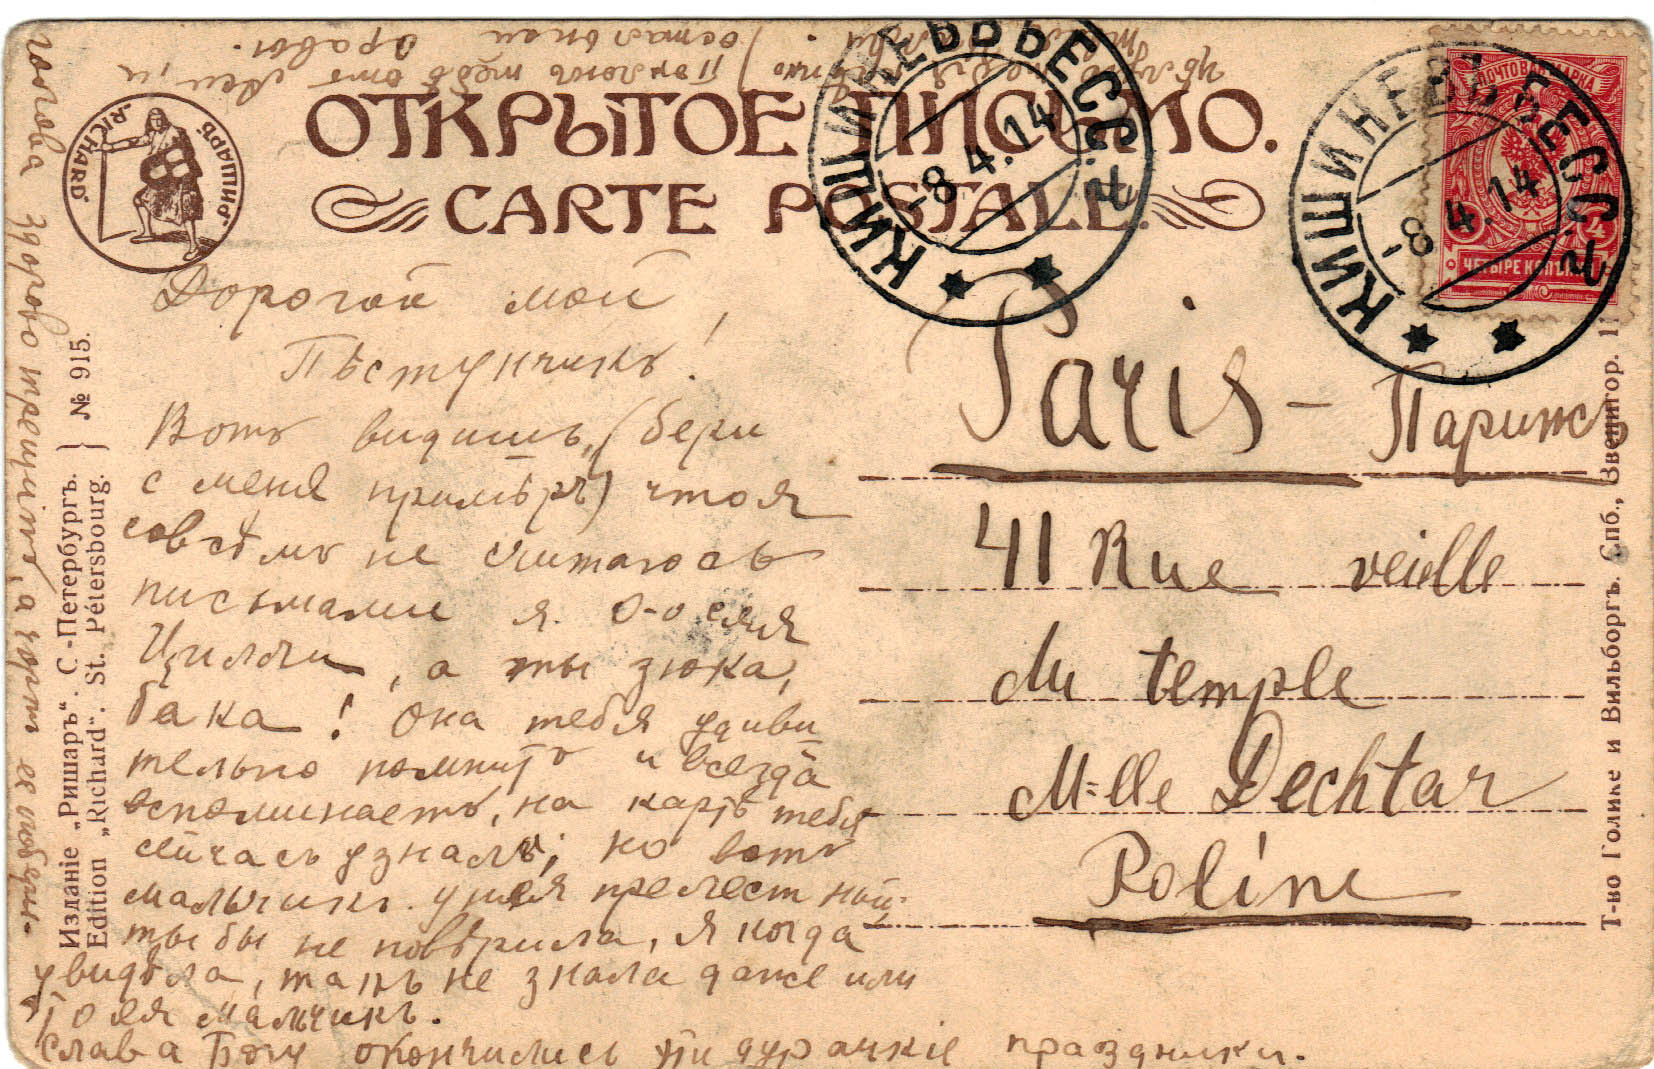 Postcard to Poline from Tsillie April 8, 1914 B